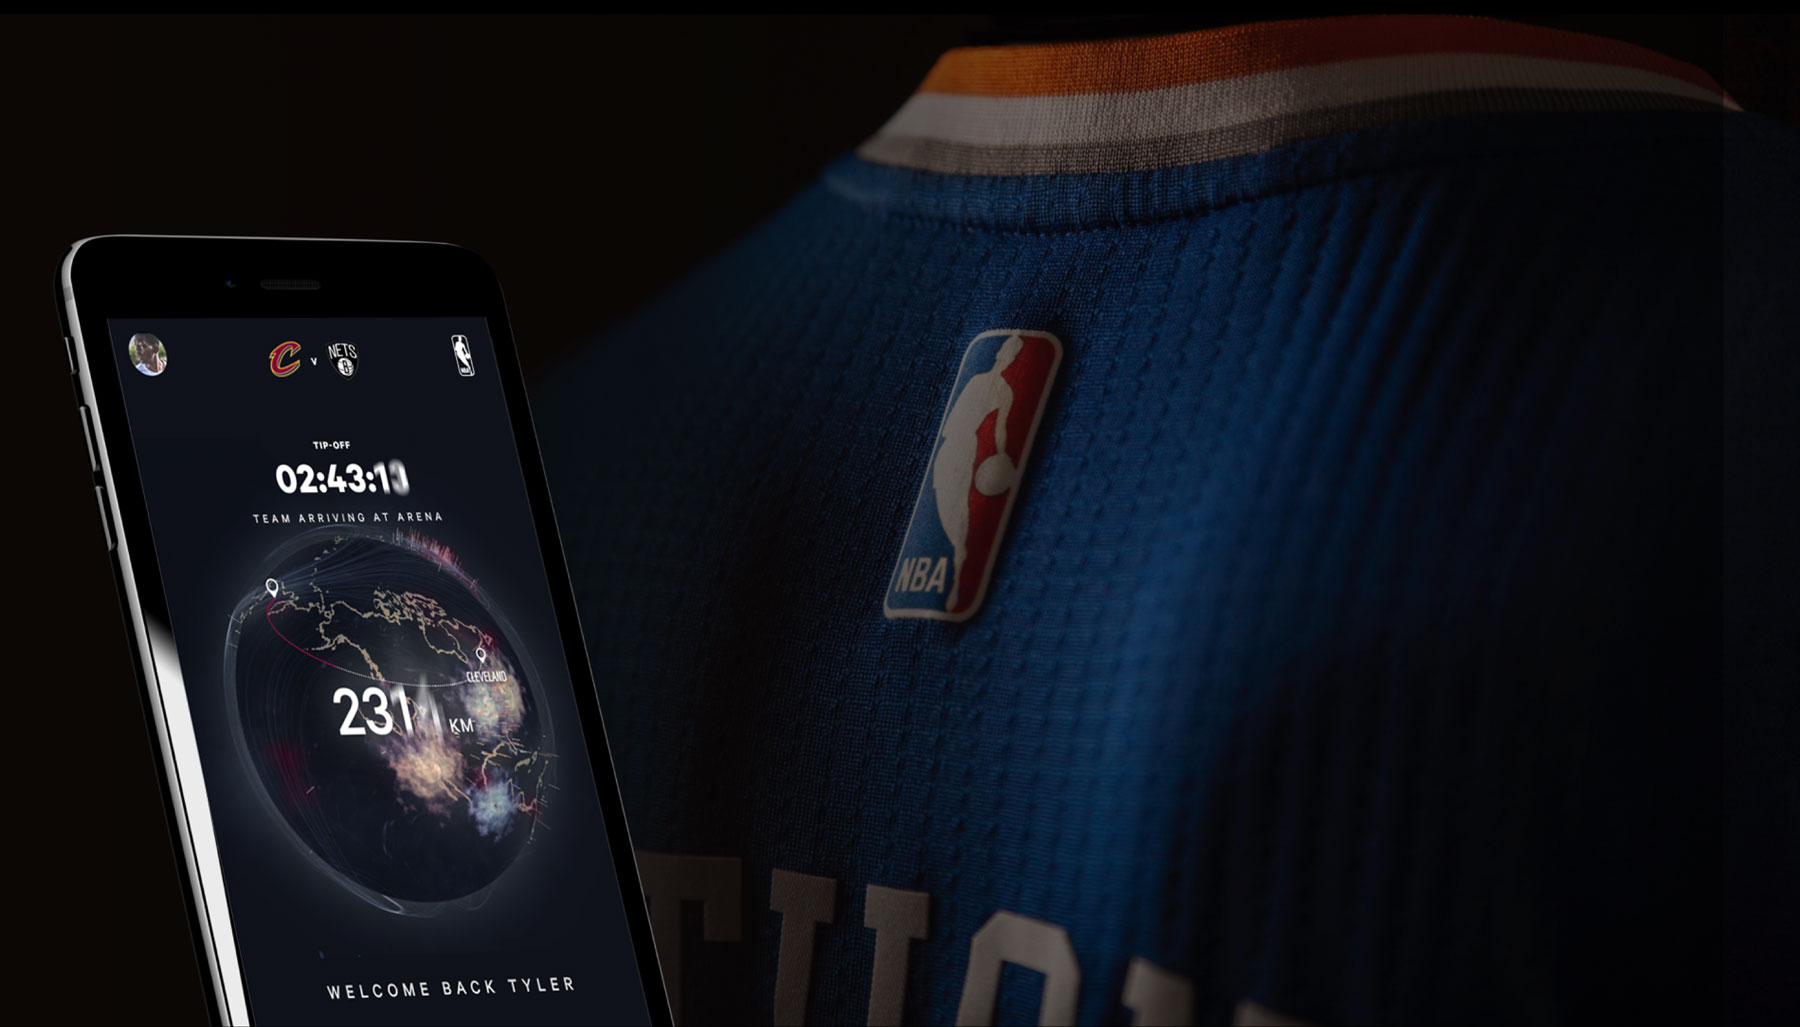 A phone with a digital experience is shown next to a NBA jersey.